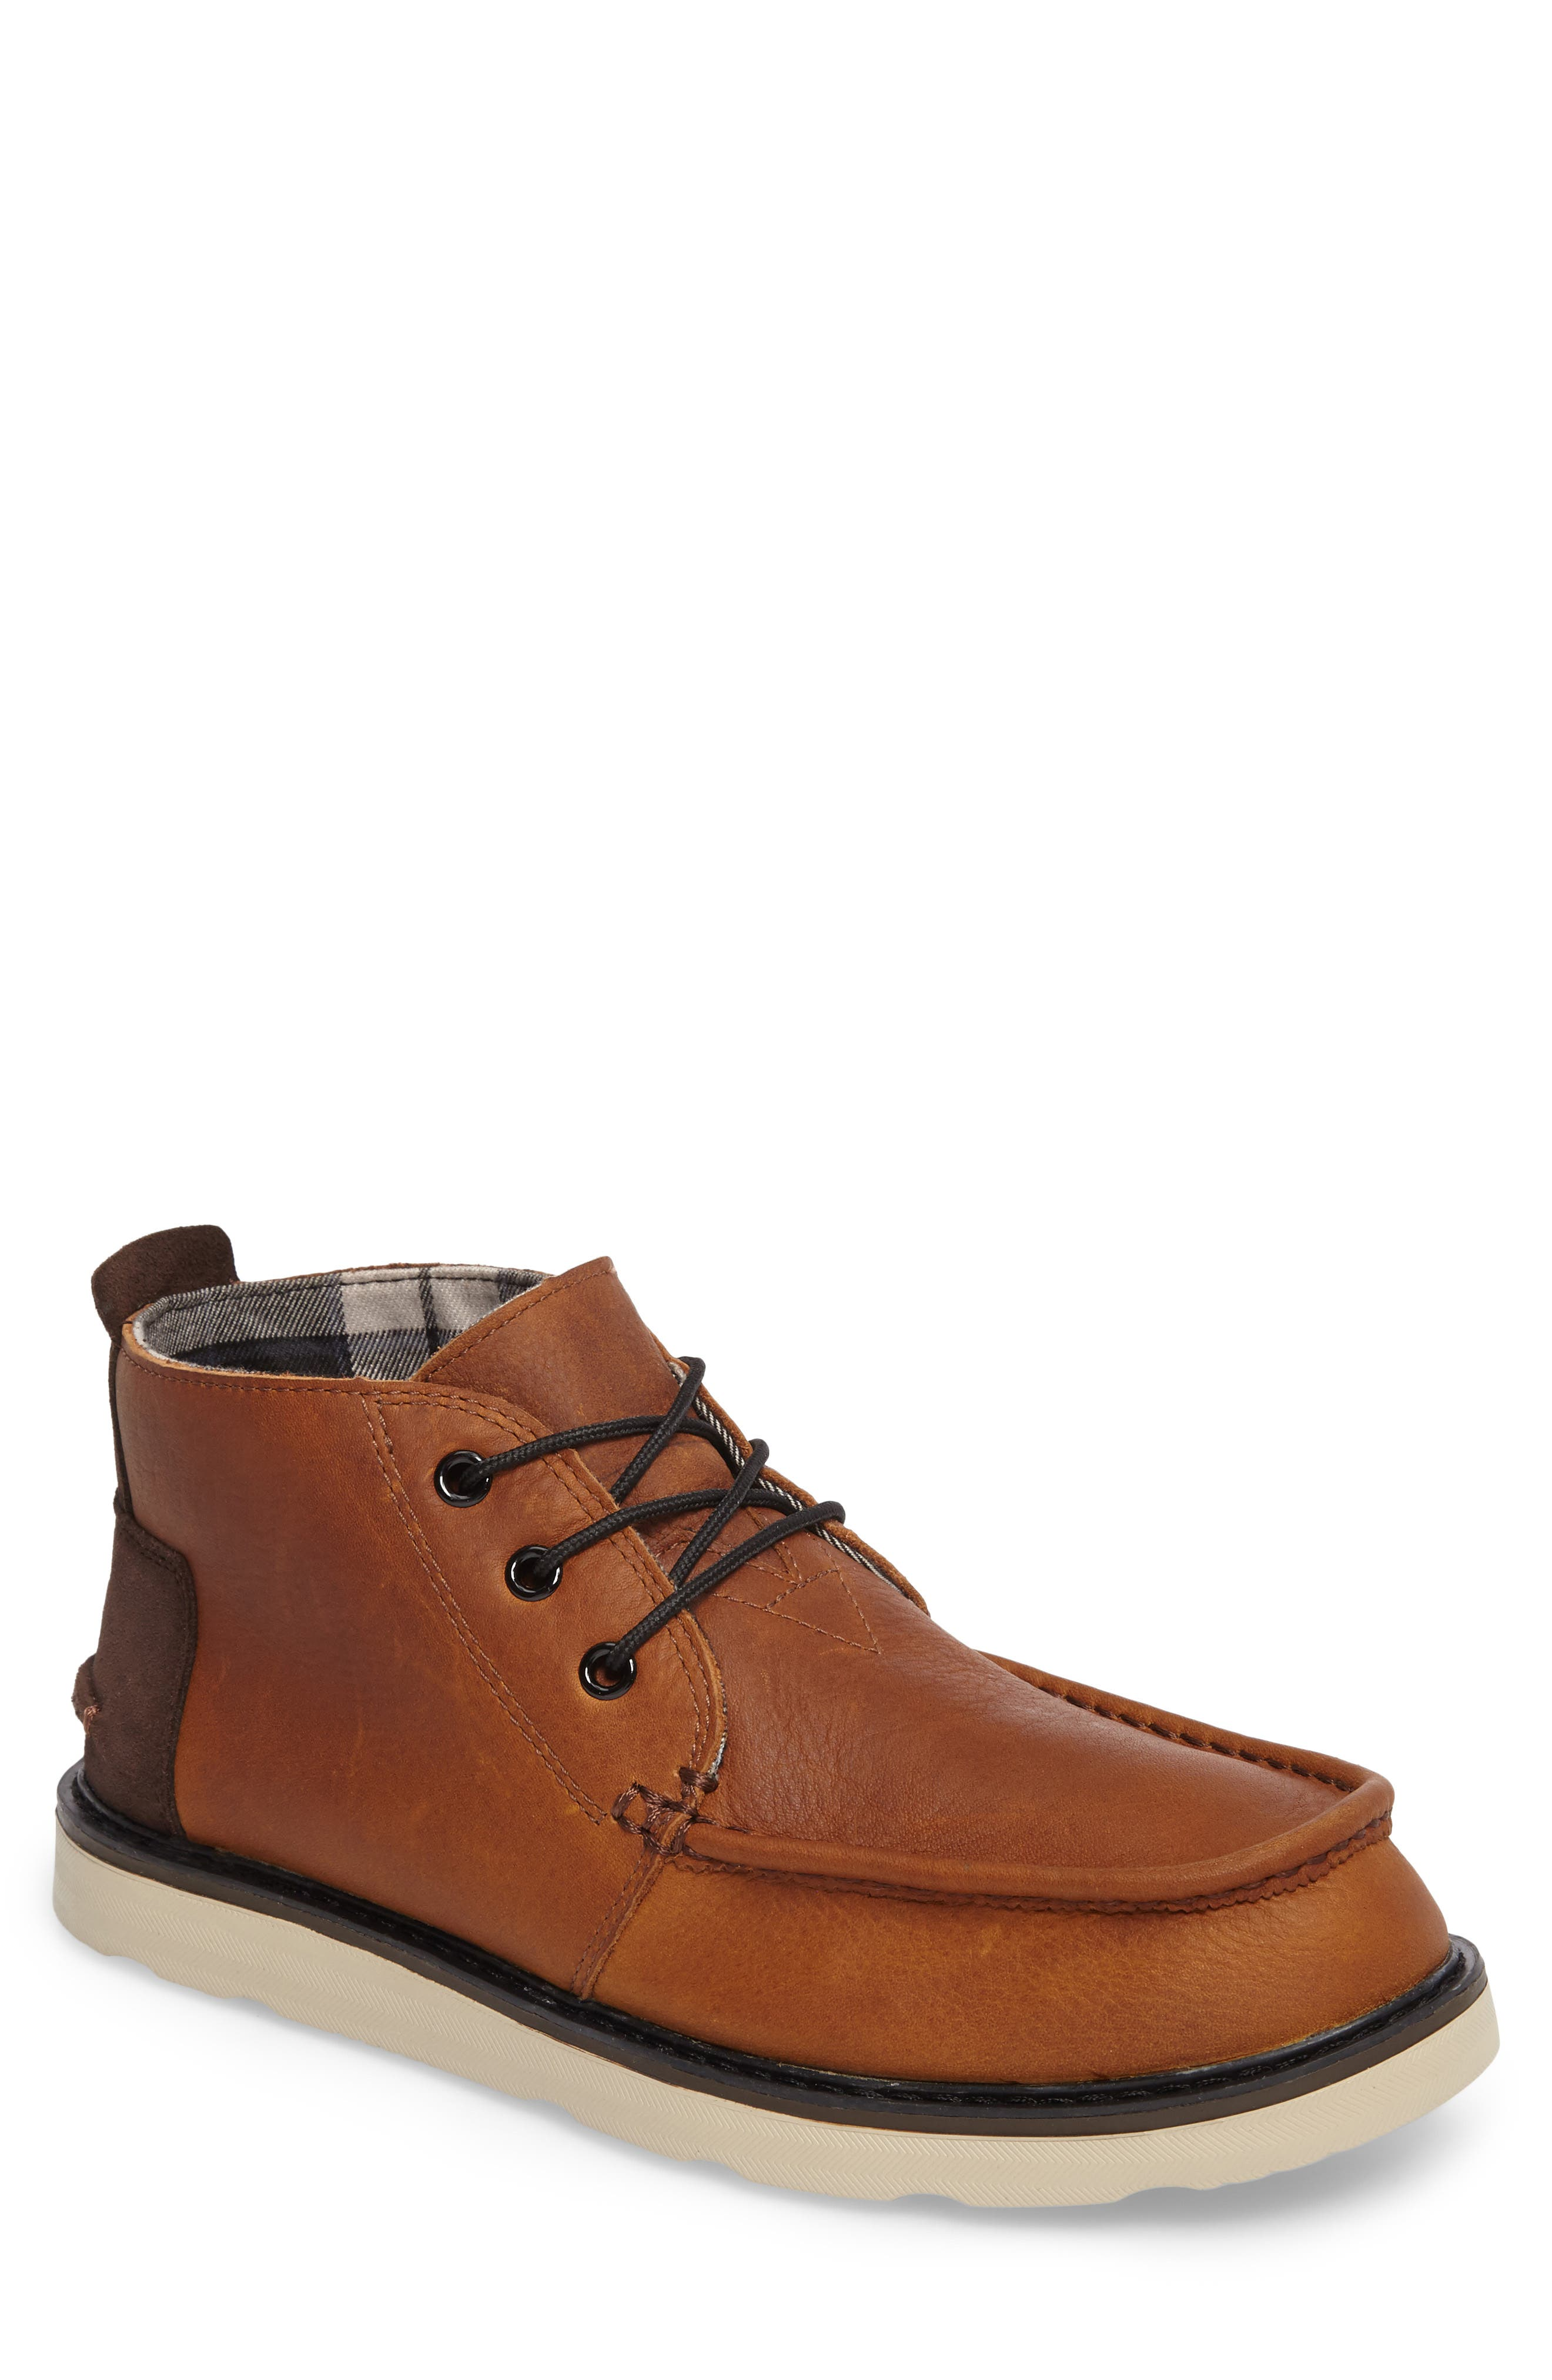 Alternate Image 1 Selected - TOMS Waterproof Chukka Boot (Men)